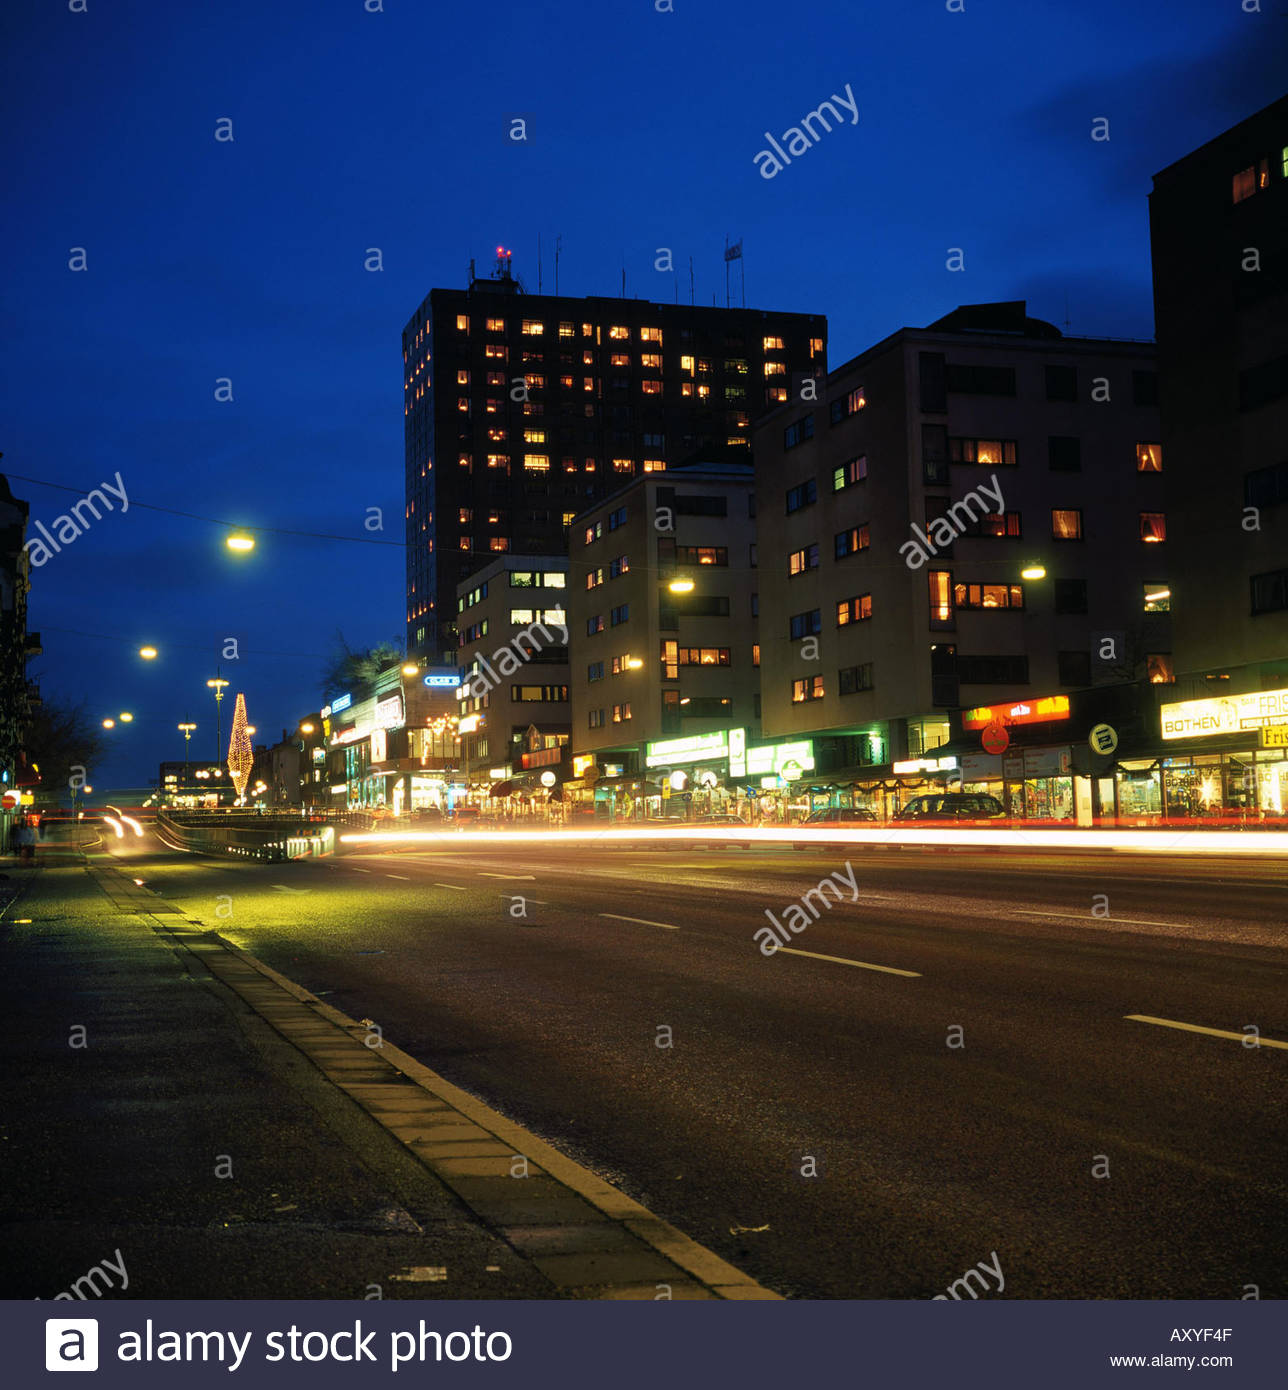 Street Lights At Night Related Keywords & Suggestions - Street Lights ...